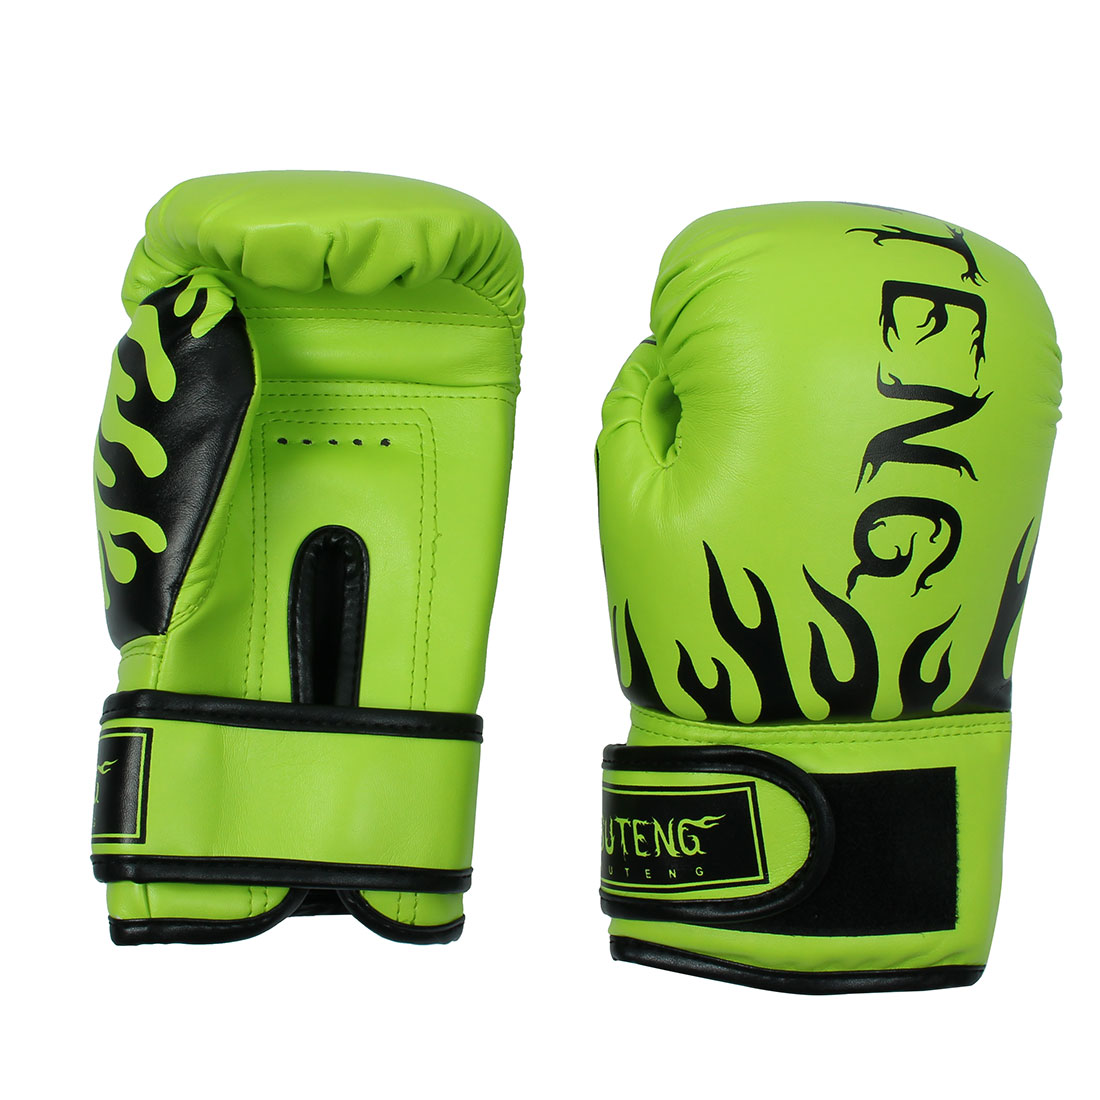 SUTENG Authorized Adult Workout PU Punching Bag Mitts Kickboxing Training Boxing Gloves Pair Fluorescent Green by